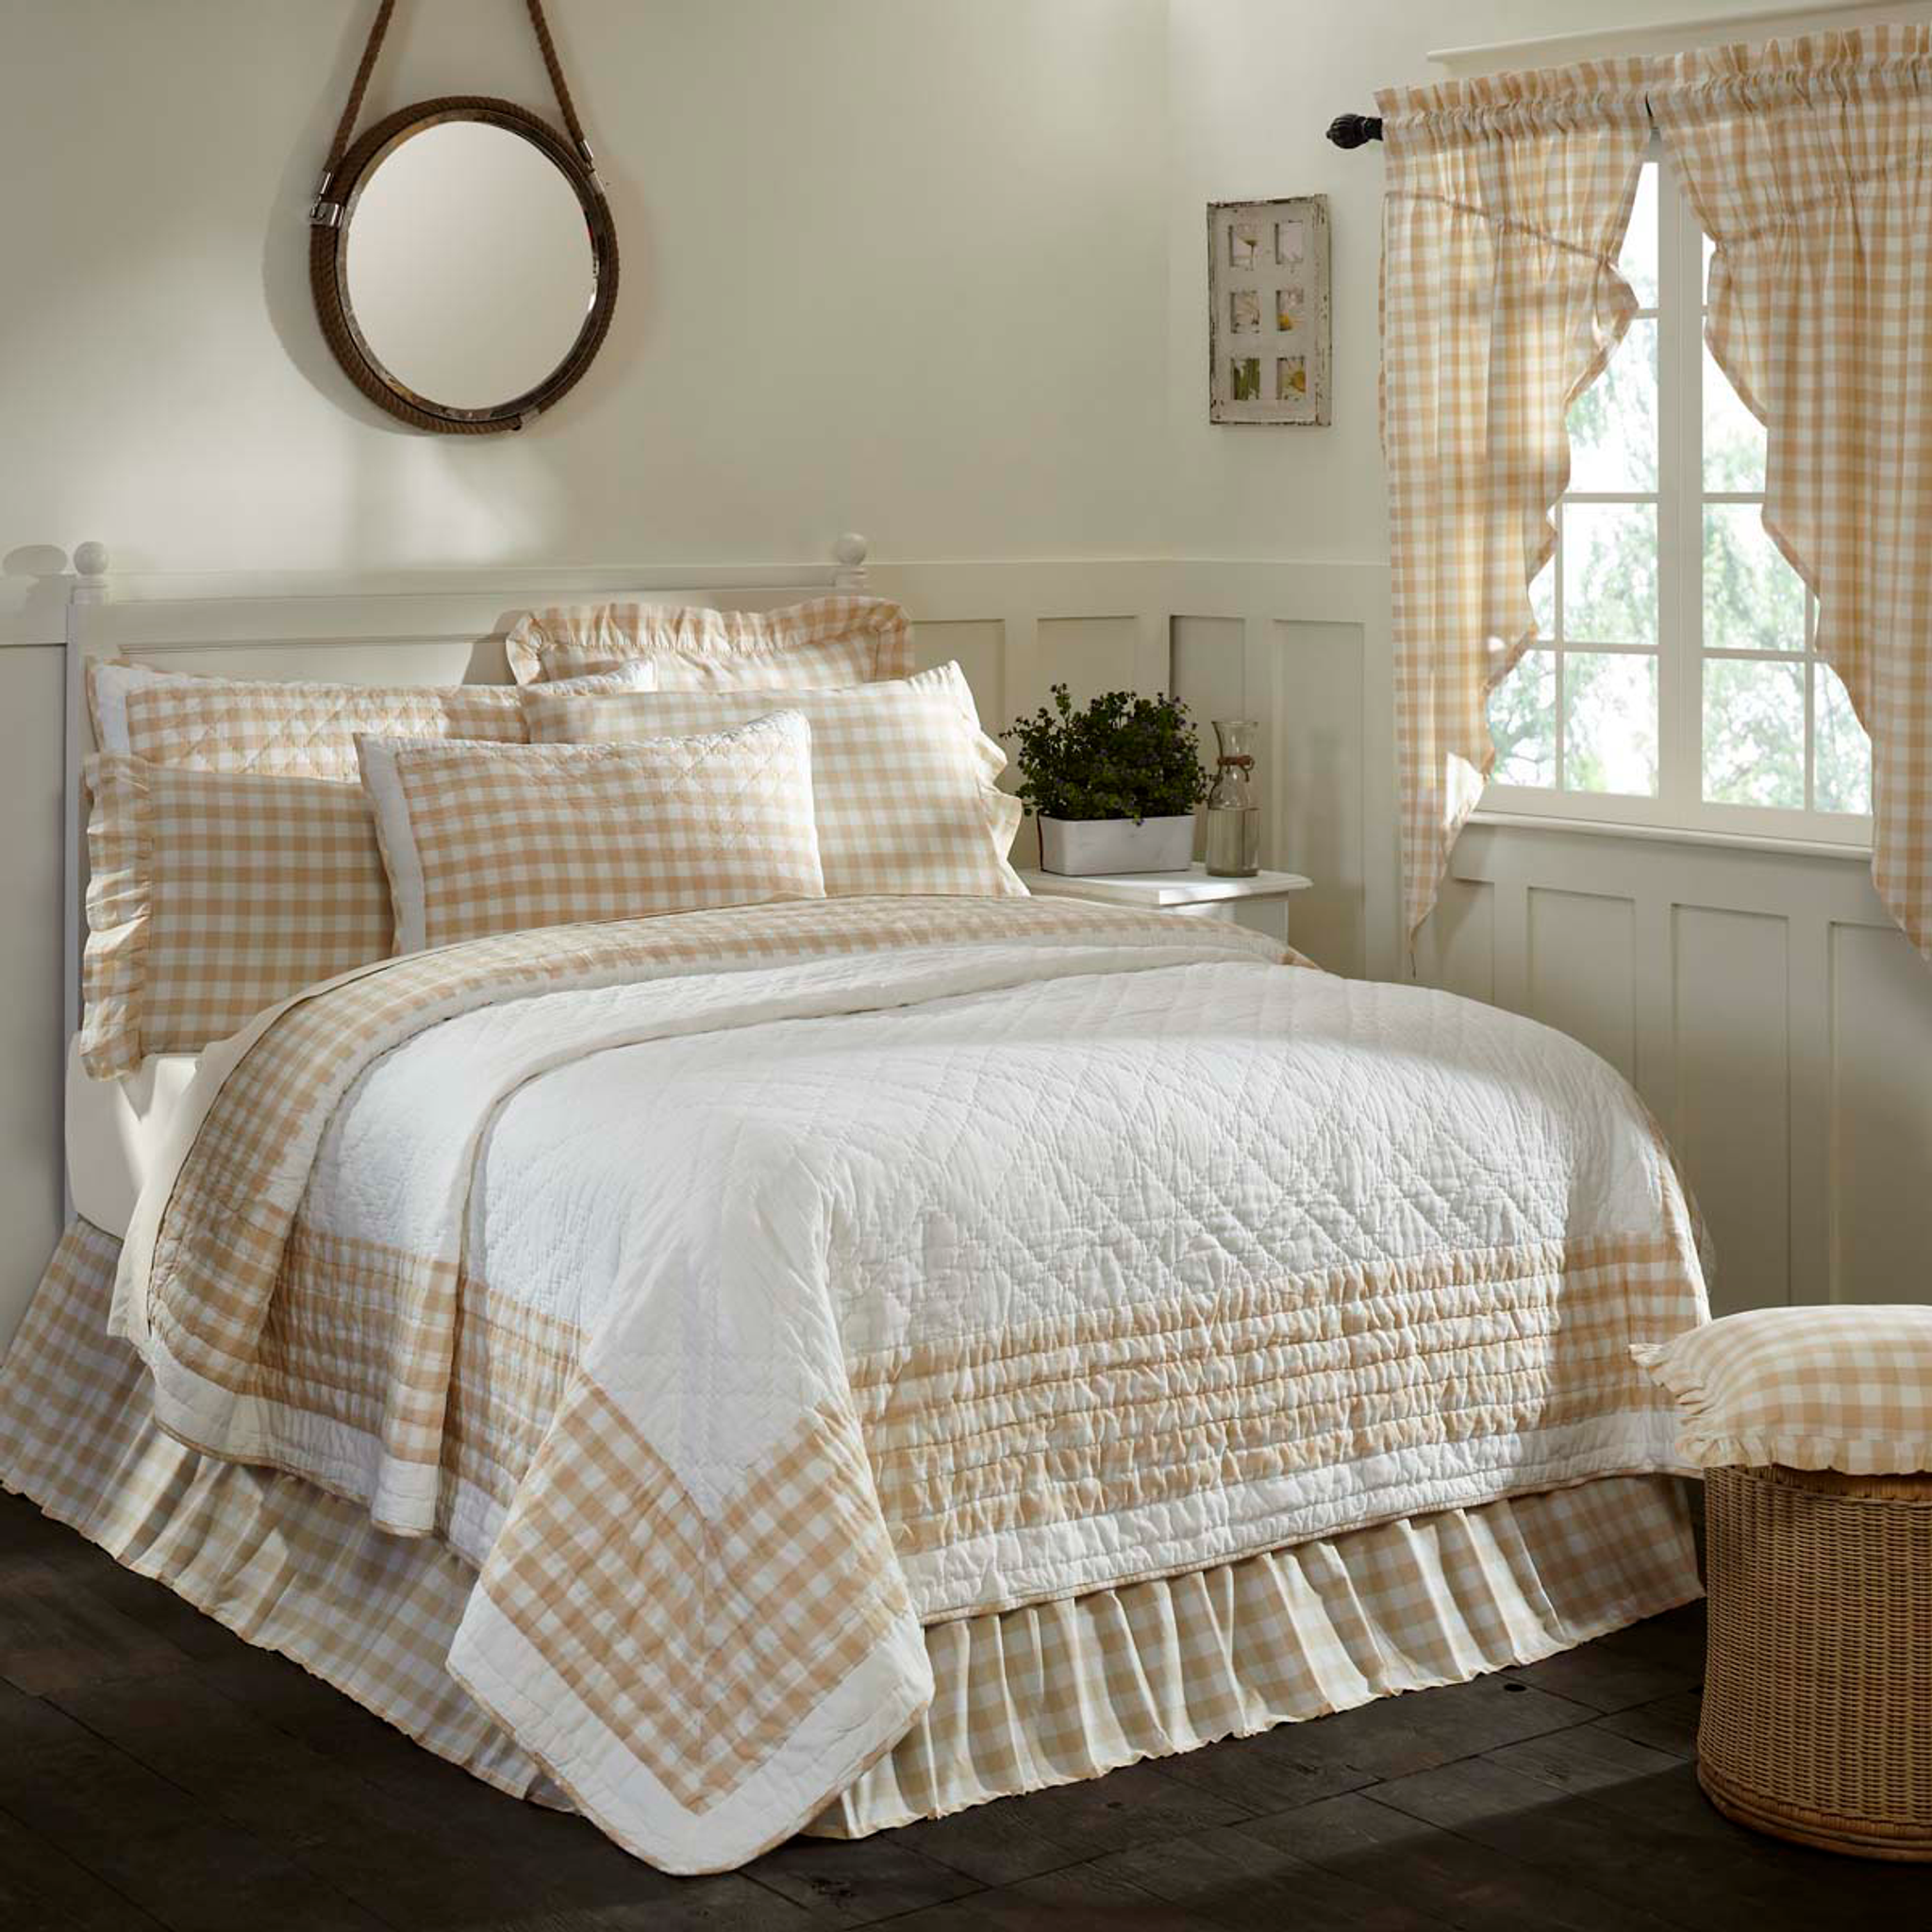 bedding overstock overseas piece product free amrapur covers shipping floral farmhouse comforter bath today duvet set